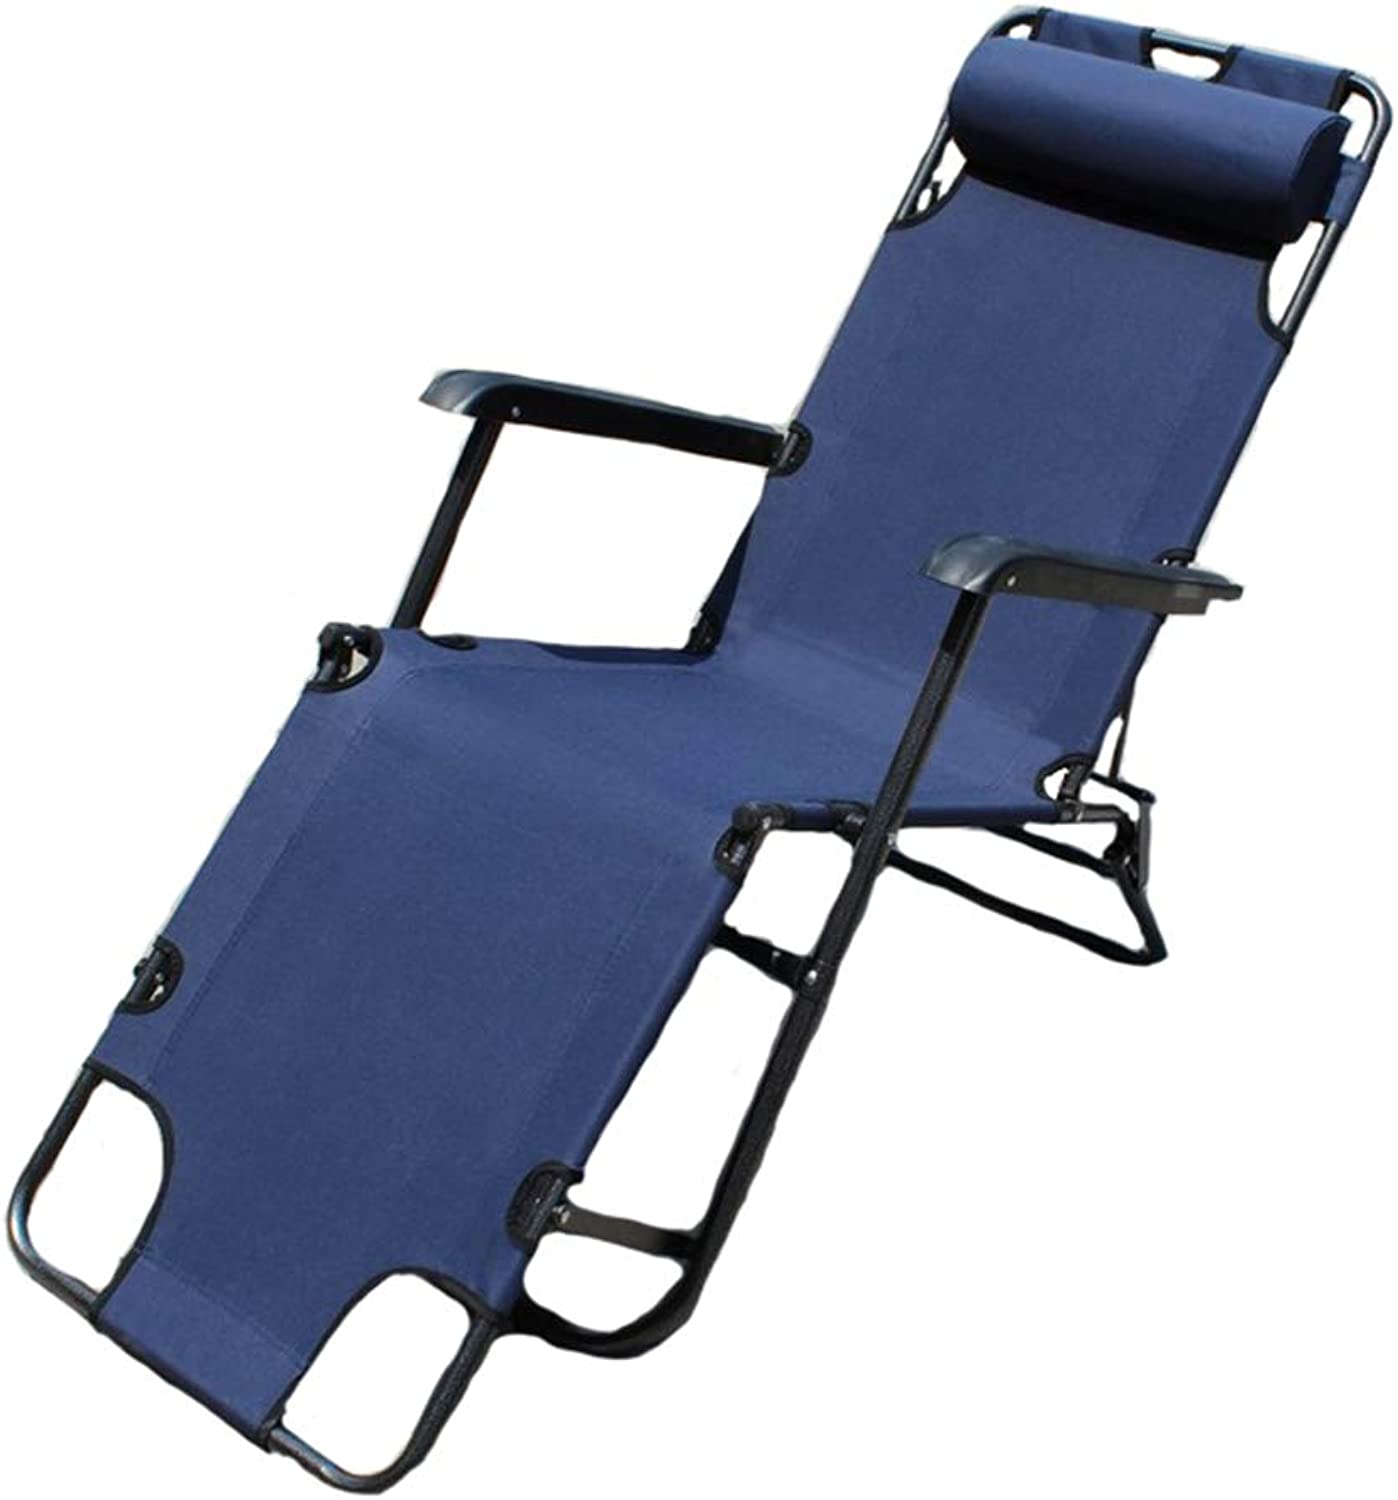 Folding Lounge Chair with Portable, High Quality Aluminum Alloy Bracket, Beach Essential (Navy, Including Storage Bag)